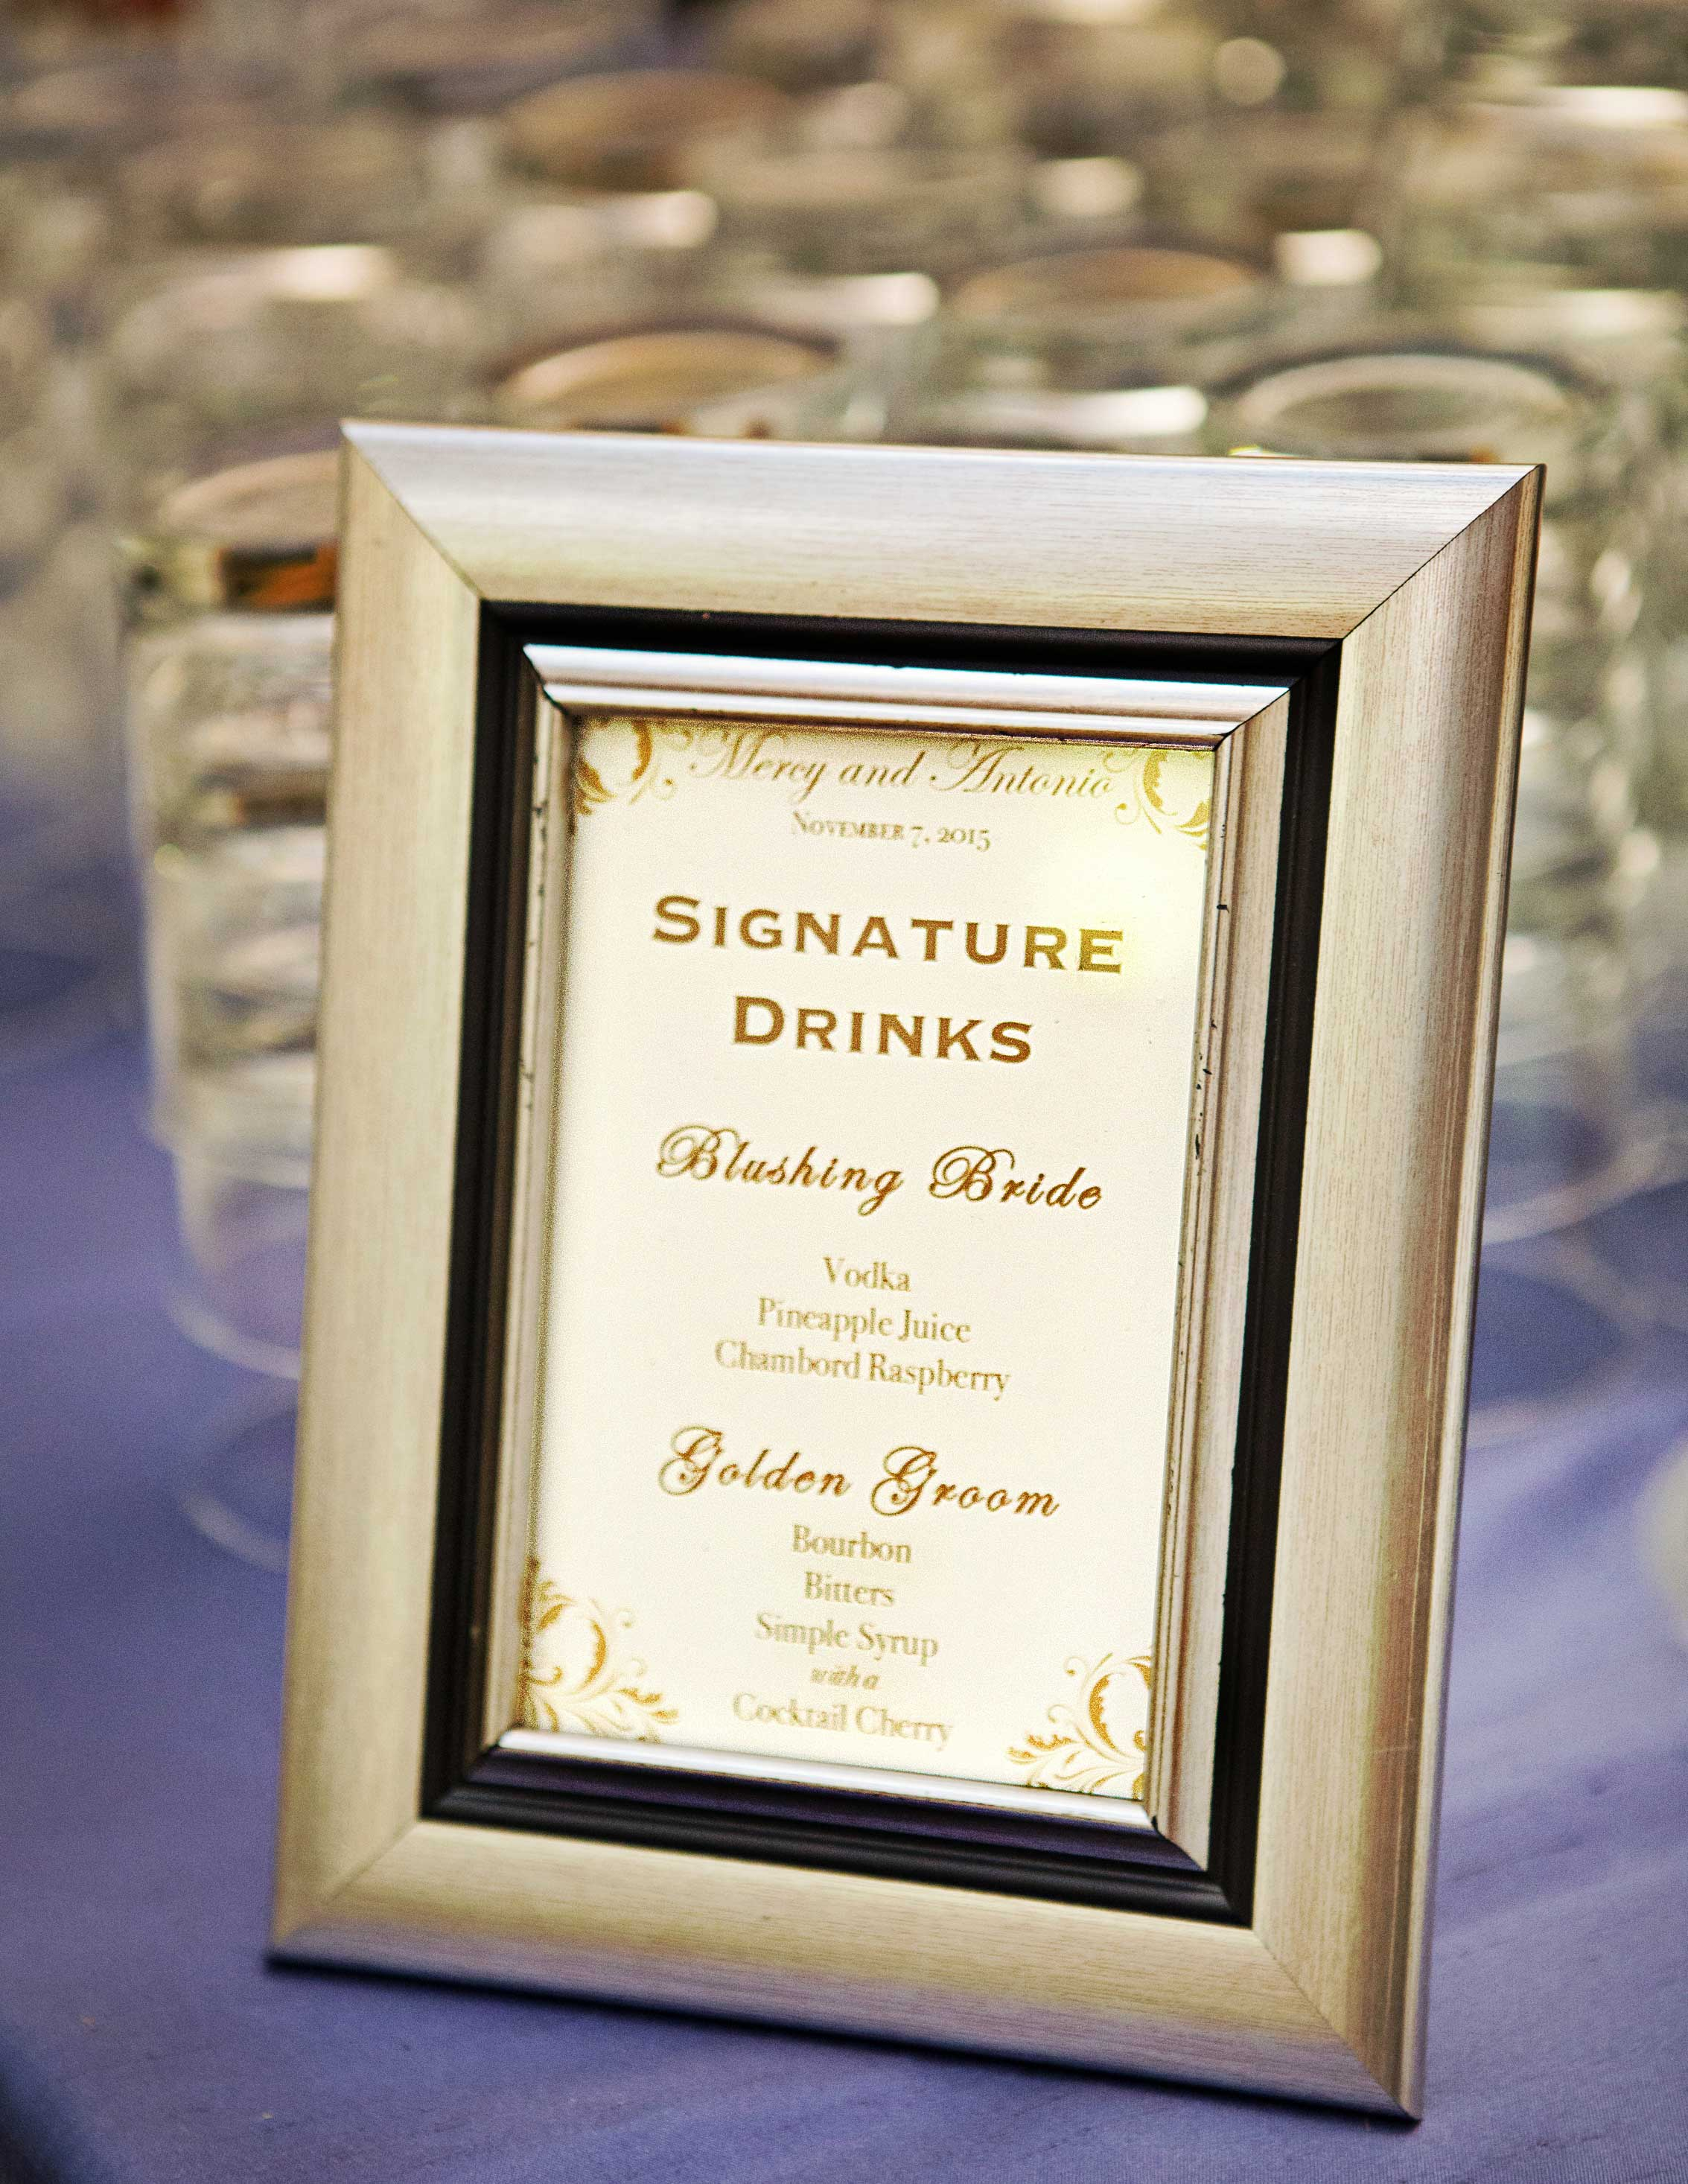 cocktail hour sign for signature drinks